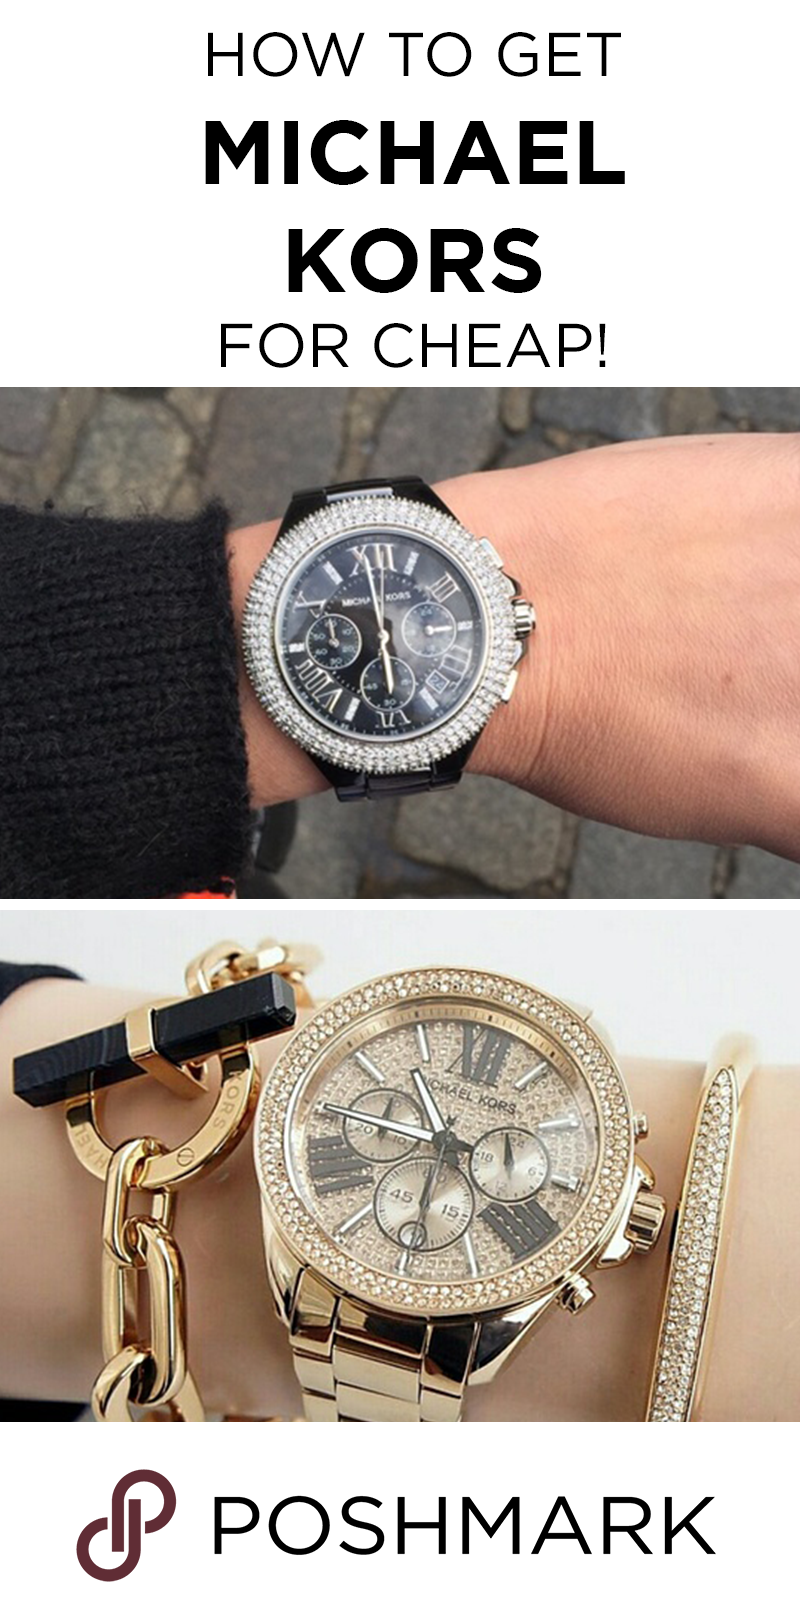 Pin on Luxury & Designer Watches, Sunglasses, Belts, Wallets